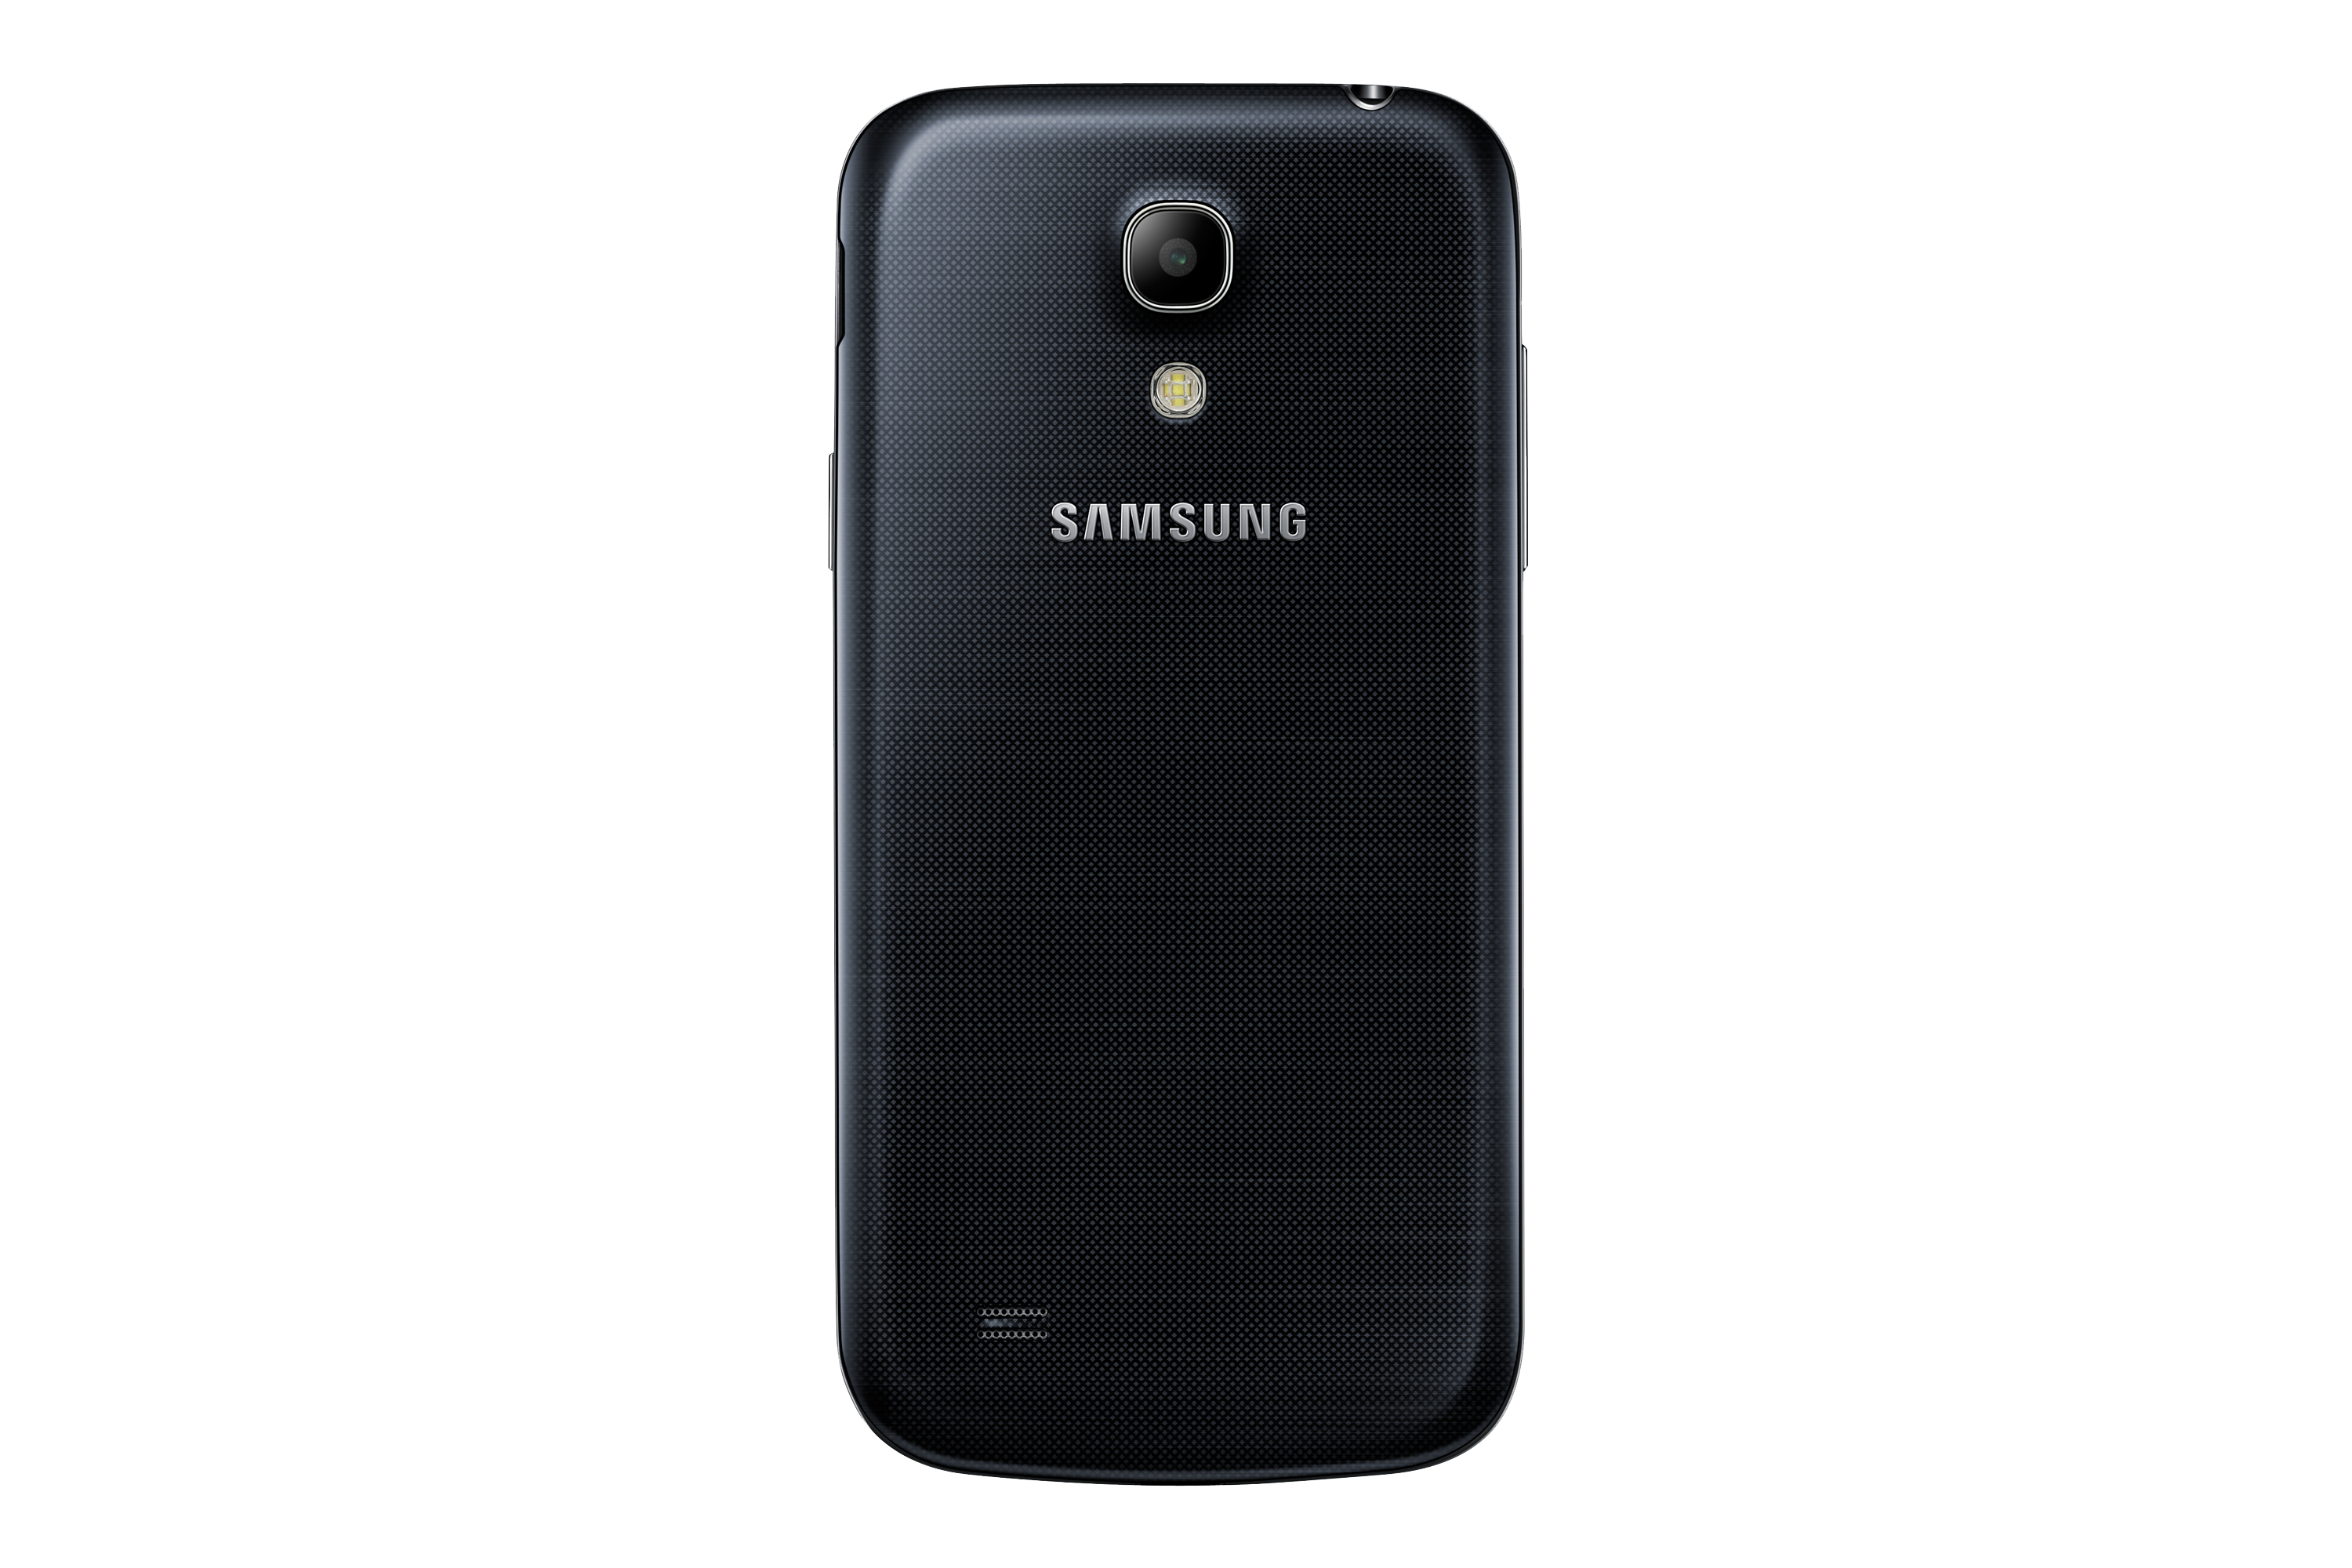 How to root Samsung Galaxy S4 mini